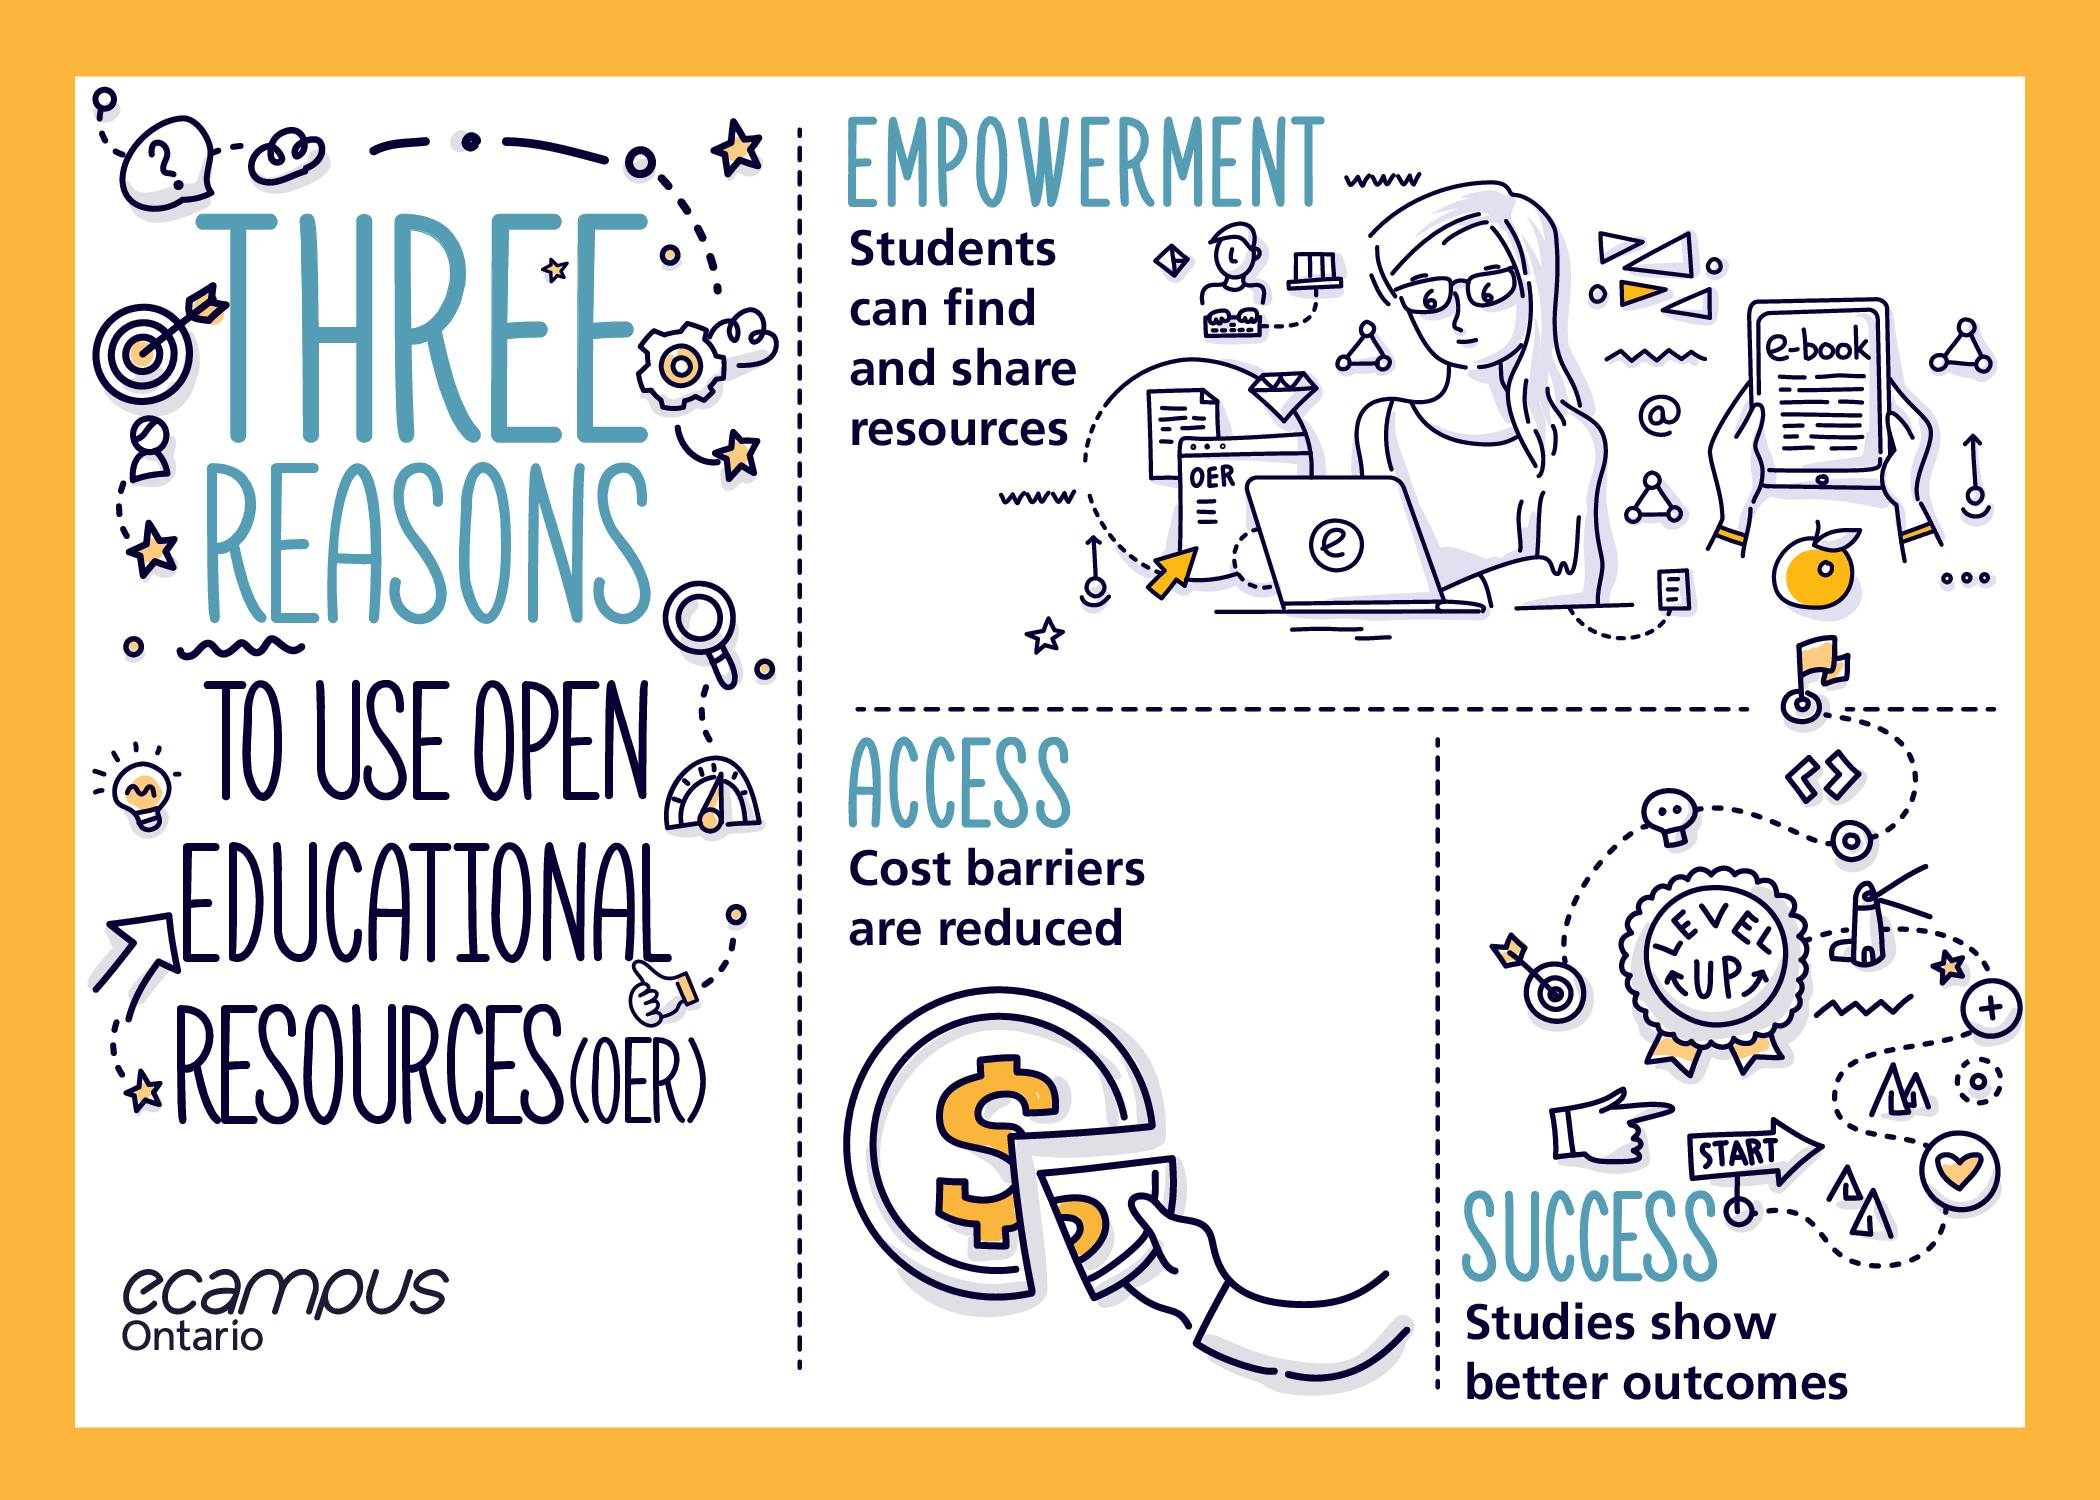 Three reasons to use OER: Empowerment, Access, Success